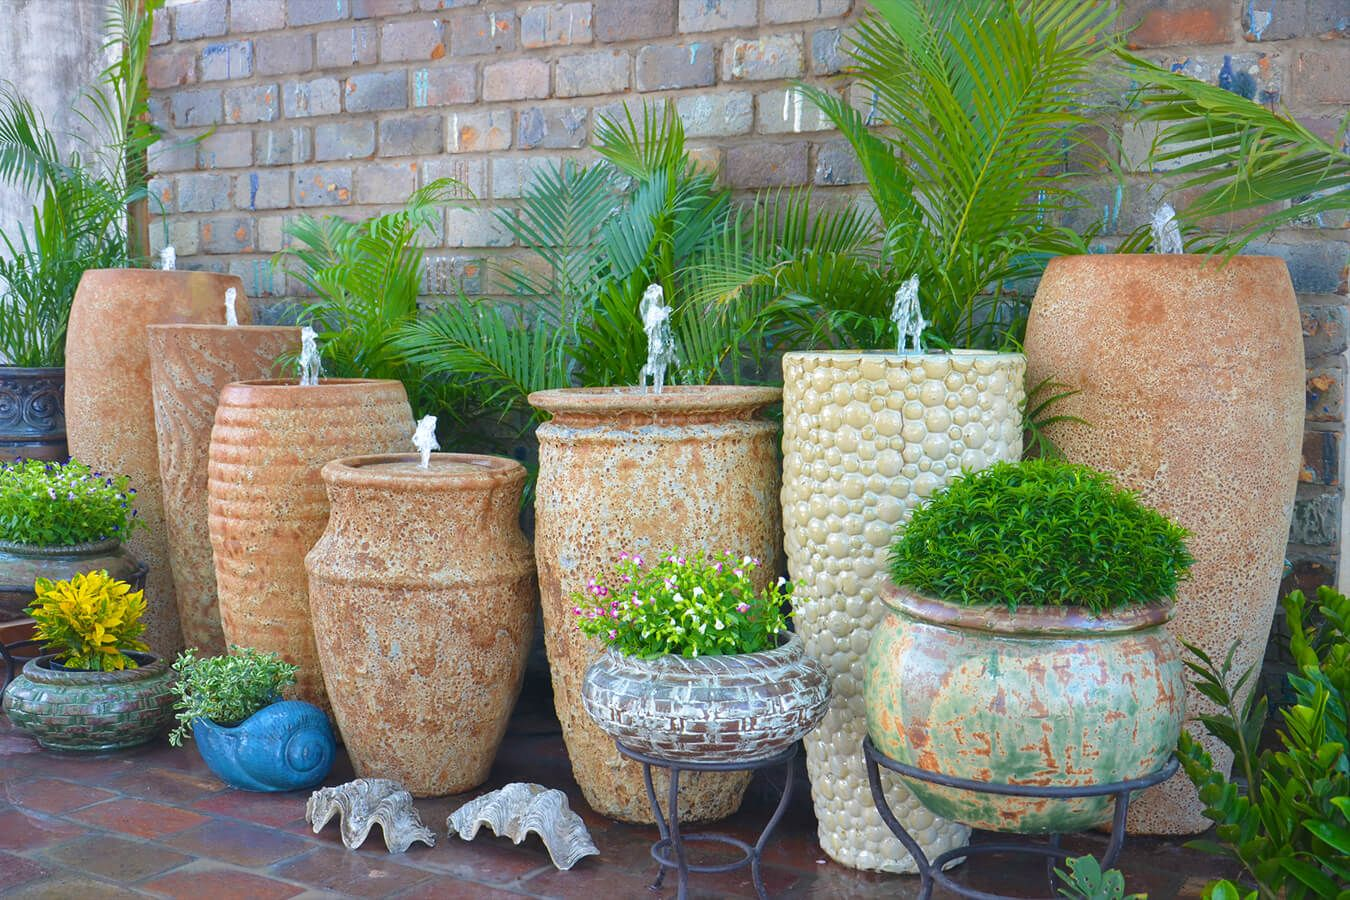 Big Flower Planters Wholesale Vietnamese Garden Pottery Large Pots Outdoor